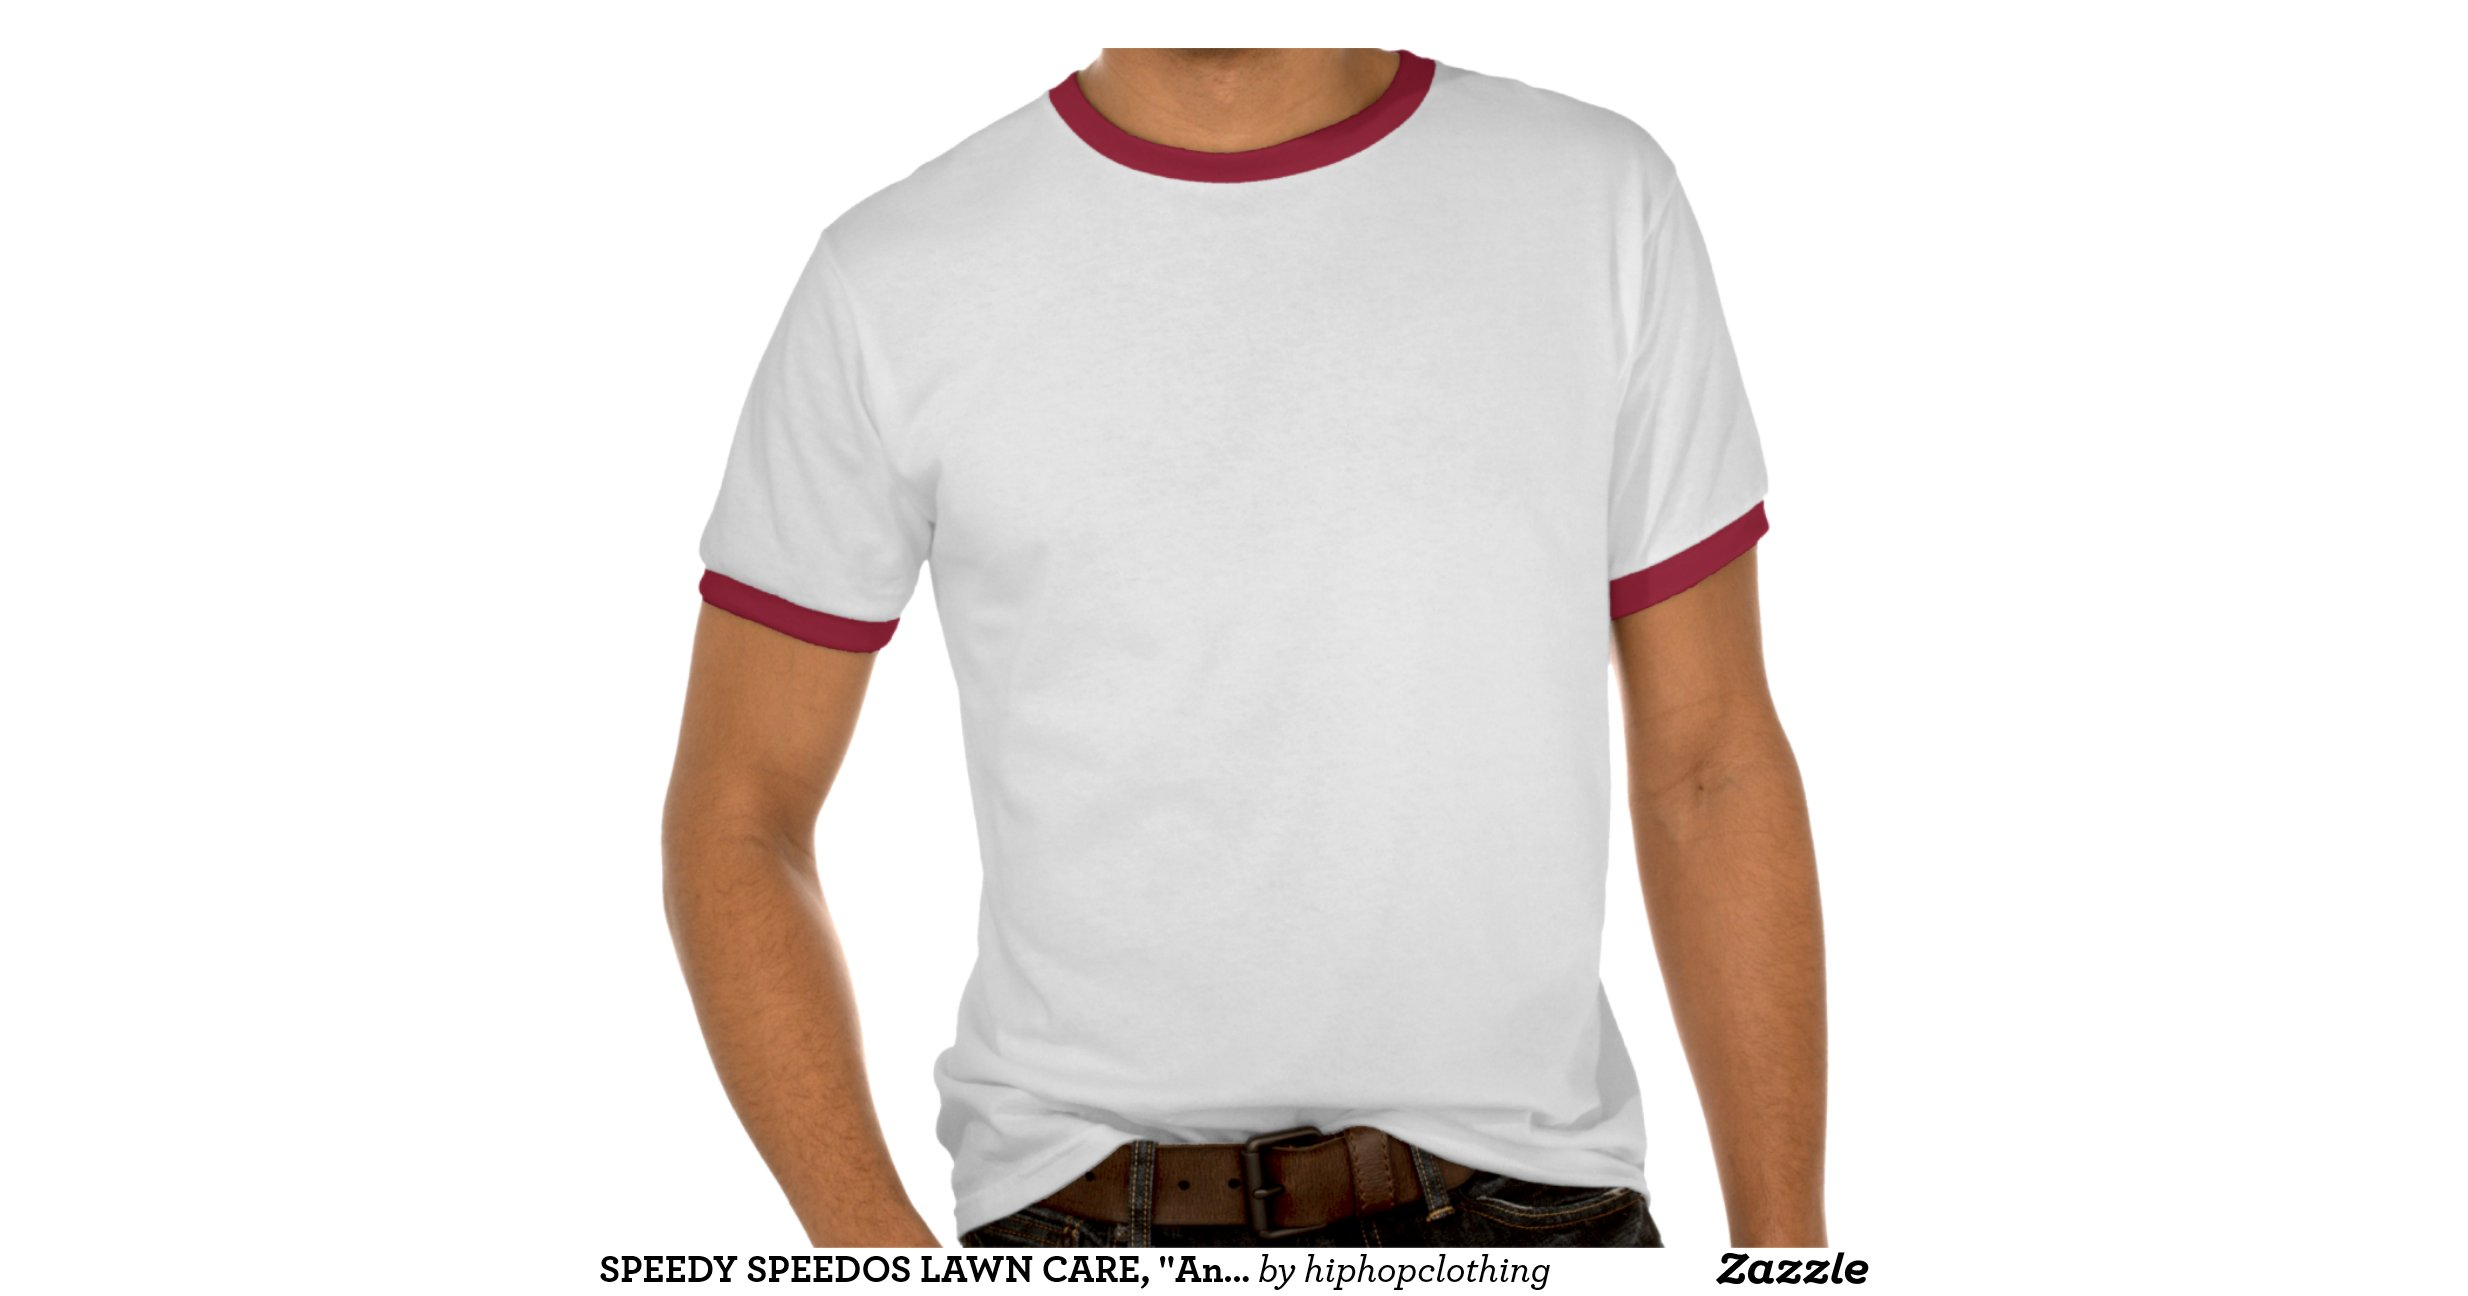 Speedy speedos lawn care any lawn any size tshirt zazzle for Lawn care t shirt designs